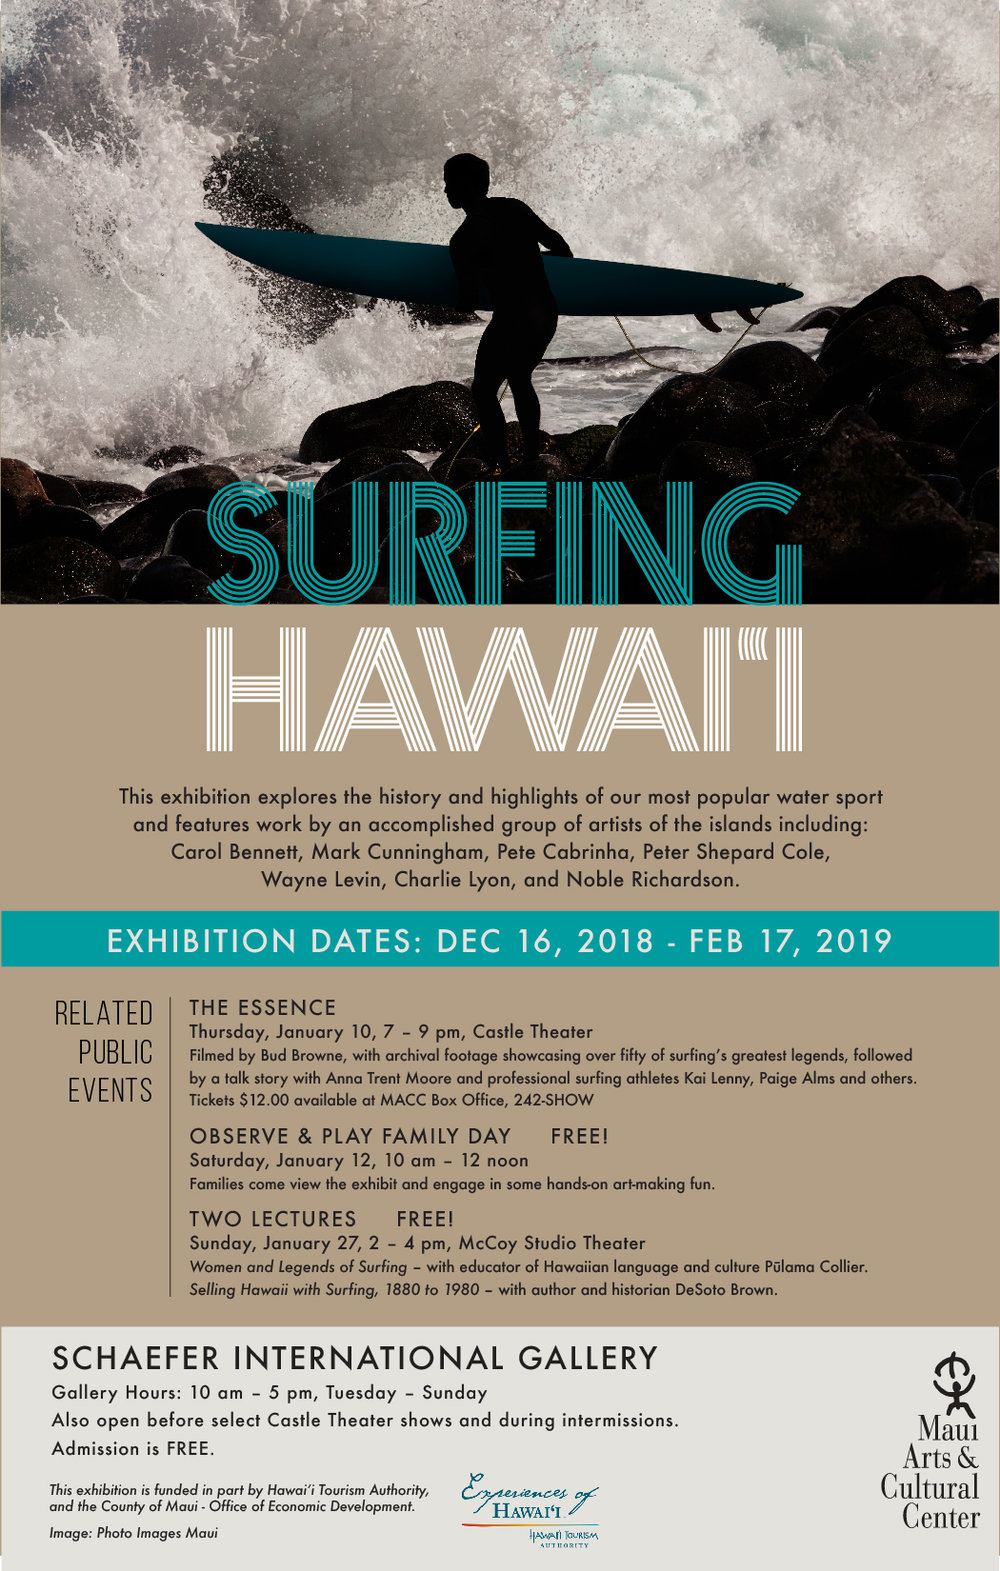 Surfing Hawaii evite no opening-01.jpg